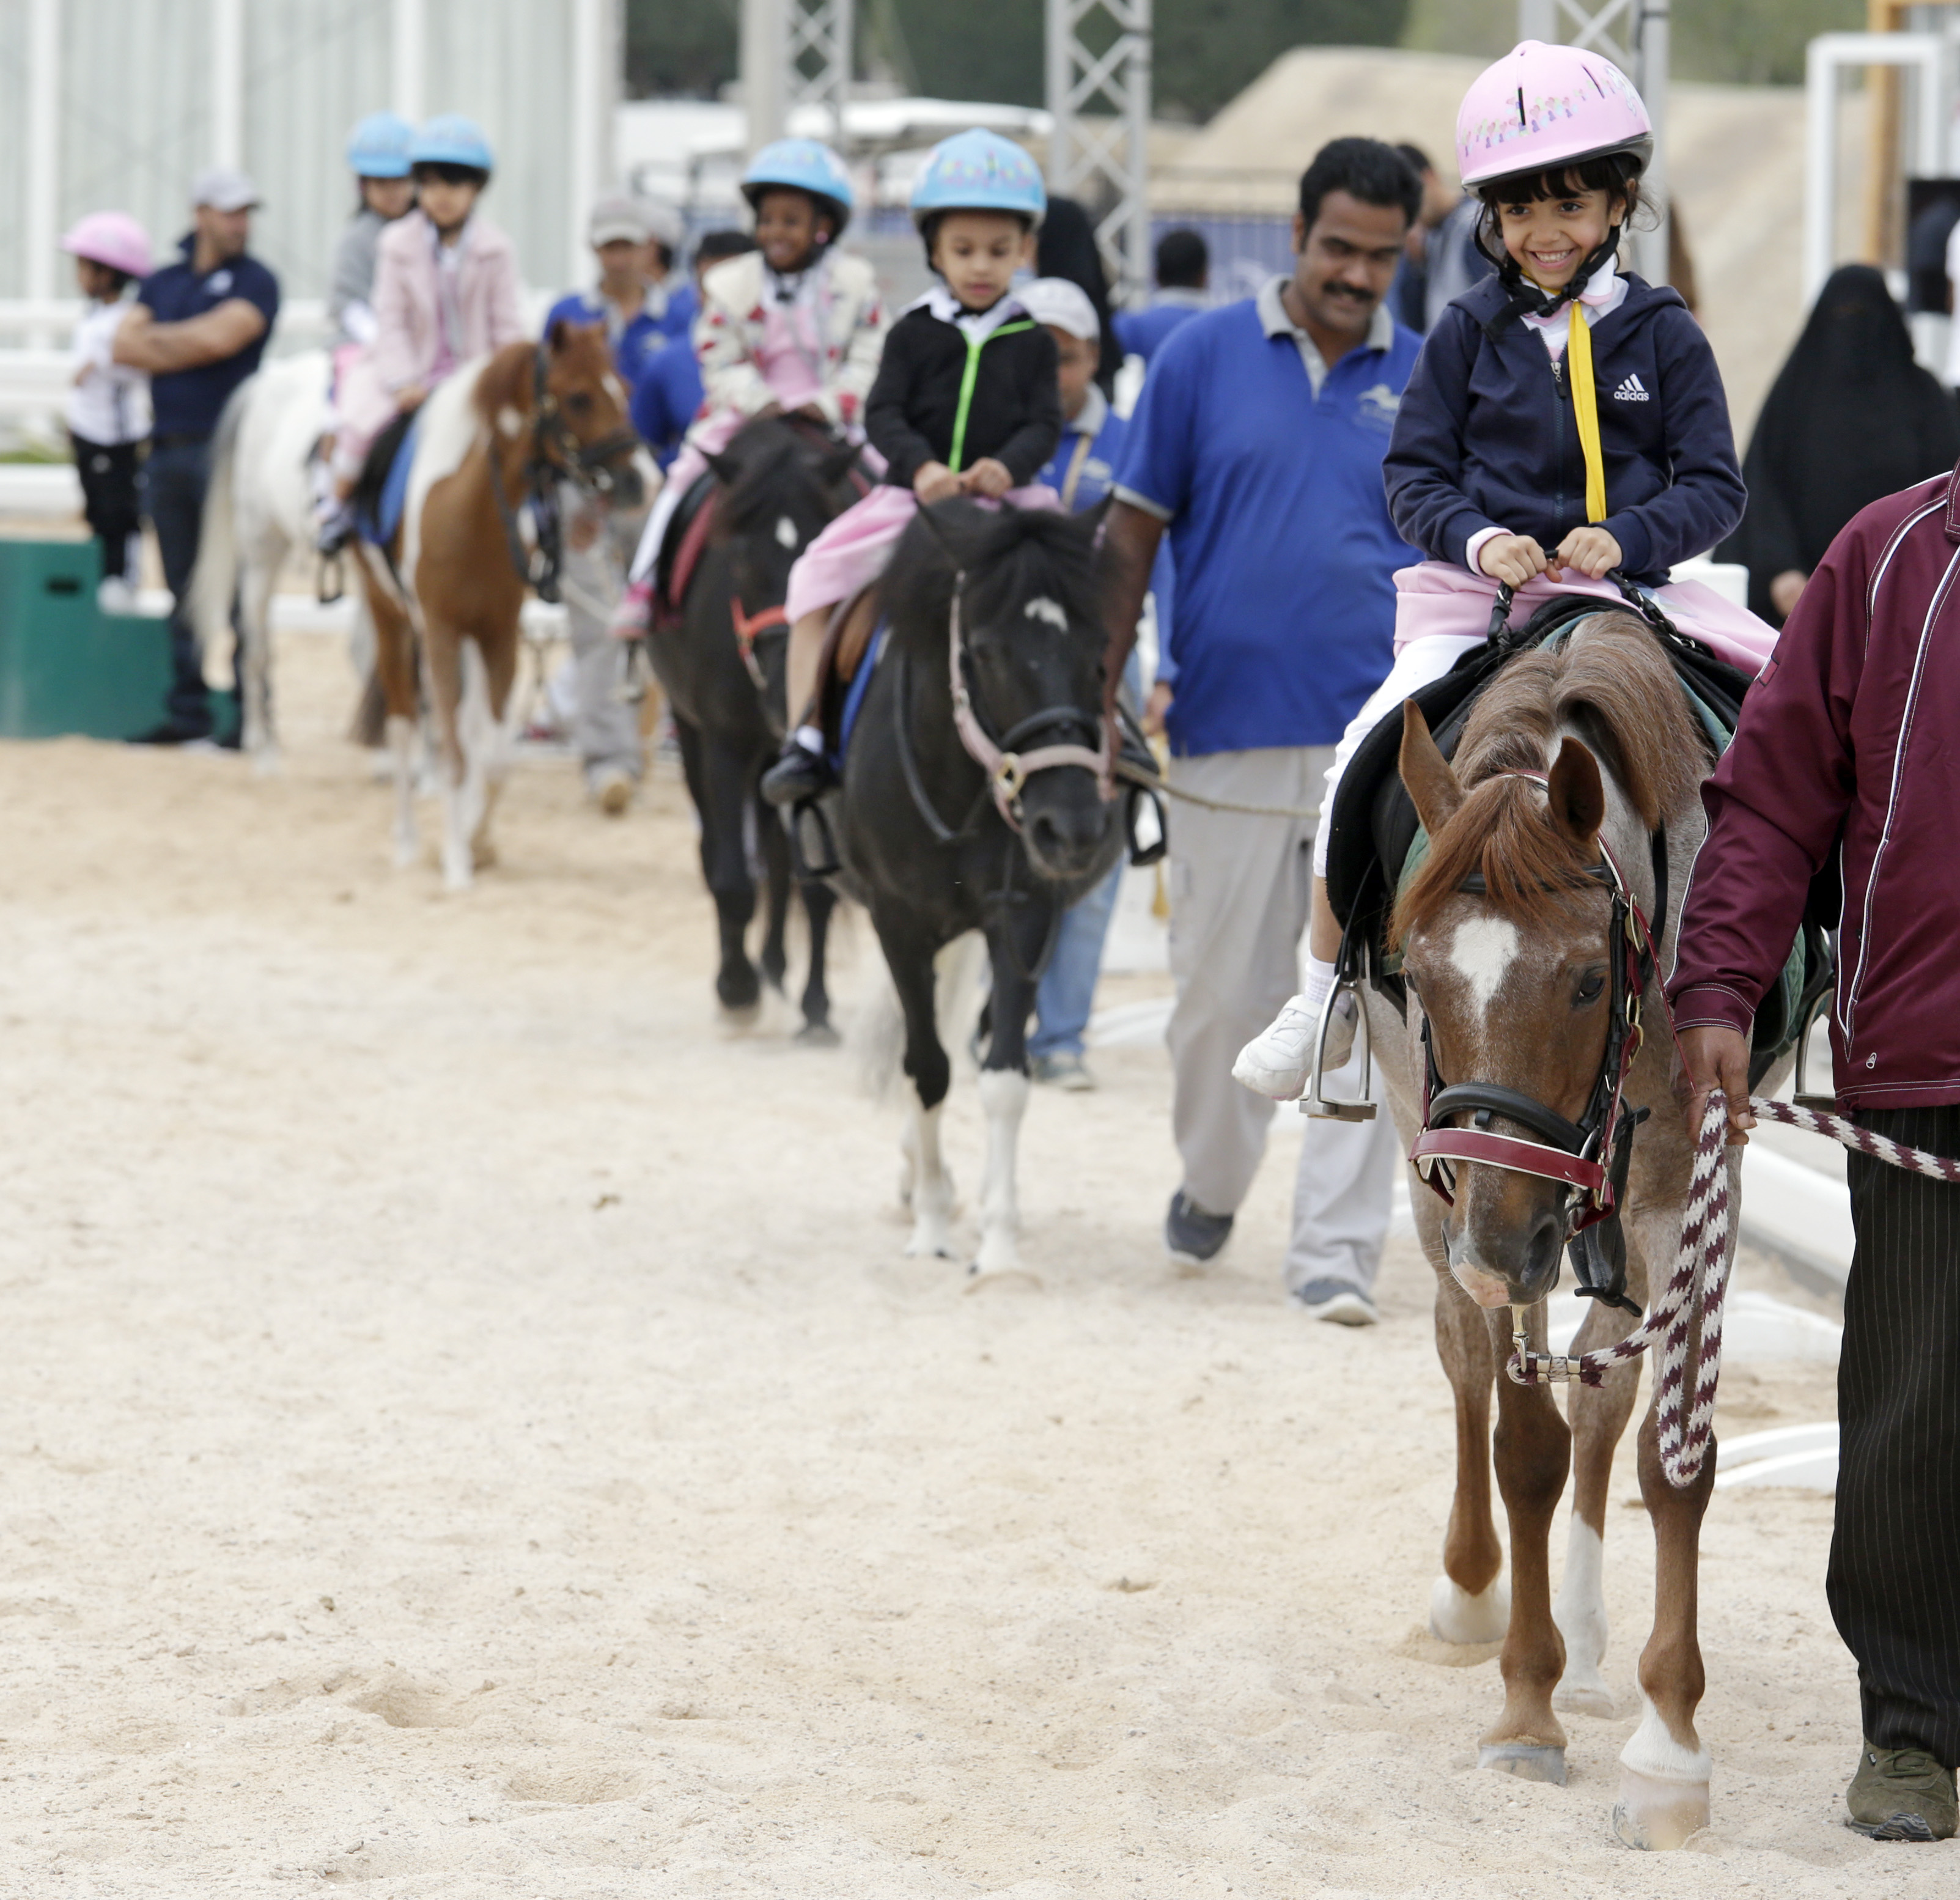 Horse Times Egypt: Equestrian Magazine :News :HORSEBACK RIDING PROVES THERAPEUTIC FOR CHILDREN WITH AUTISM